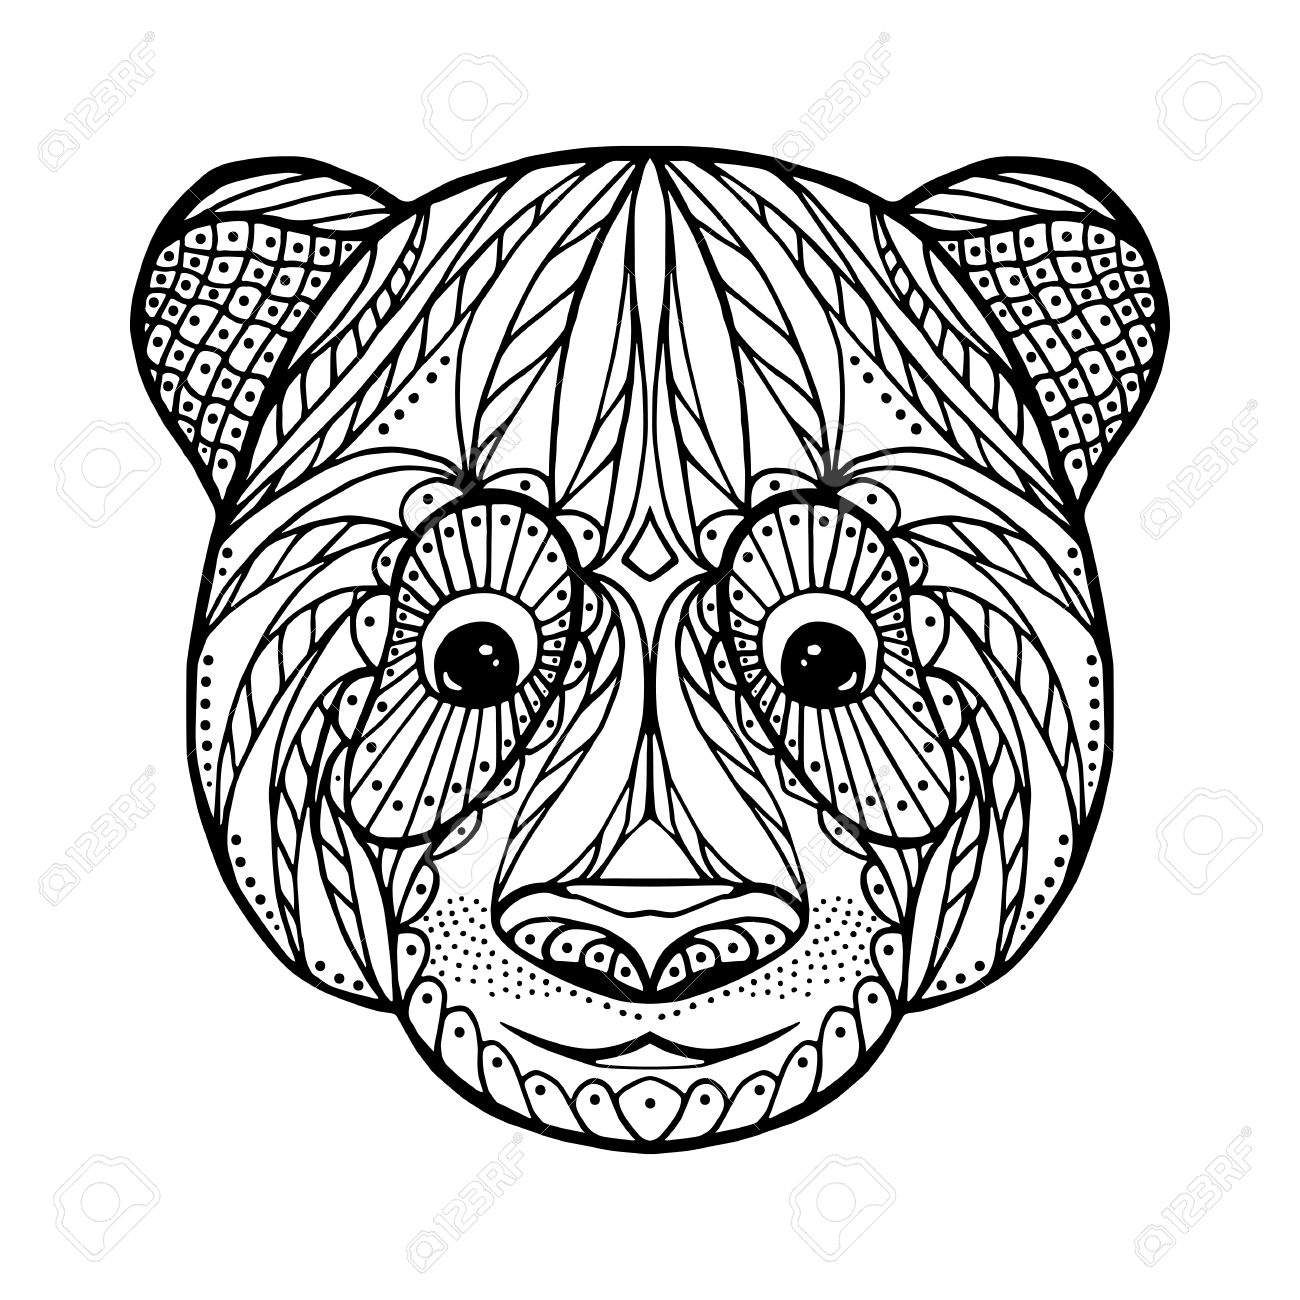 1300x1300 Zen Tangle Head Of Panda, For Adult Anti Stress Coloring Page